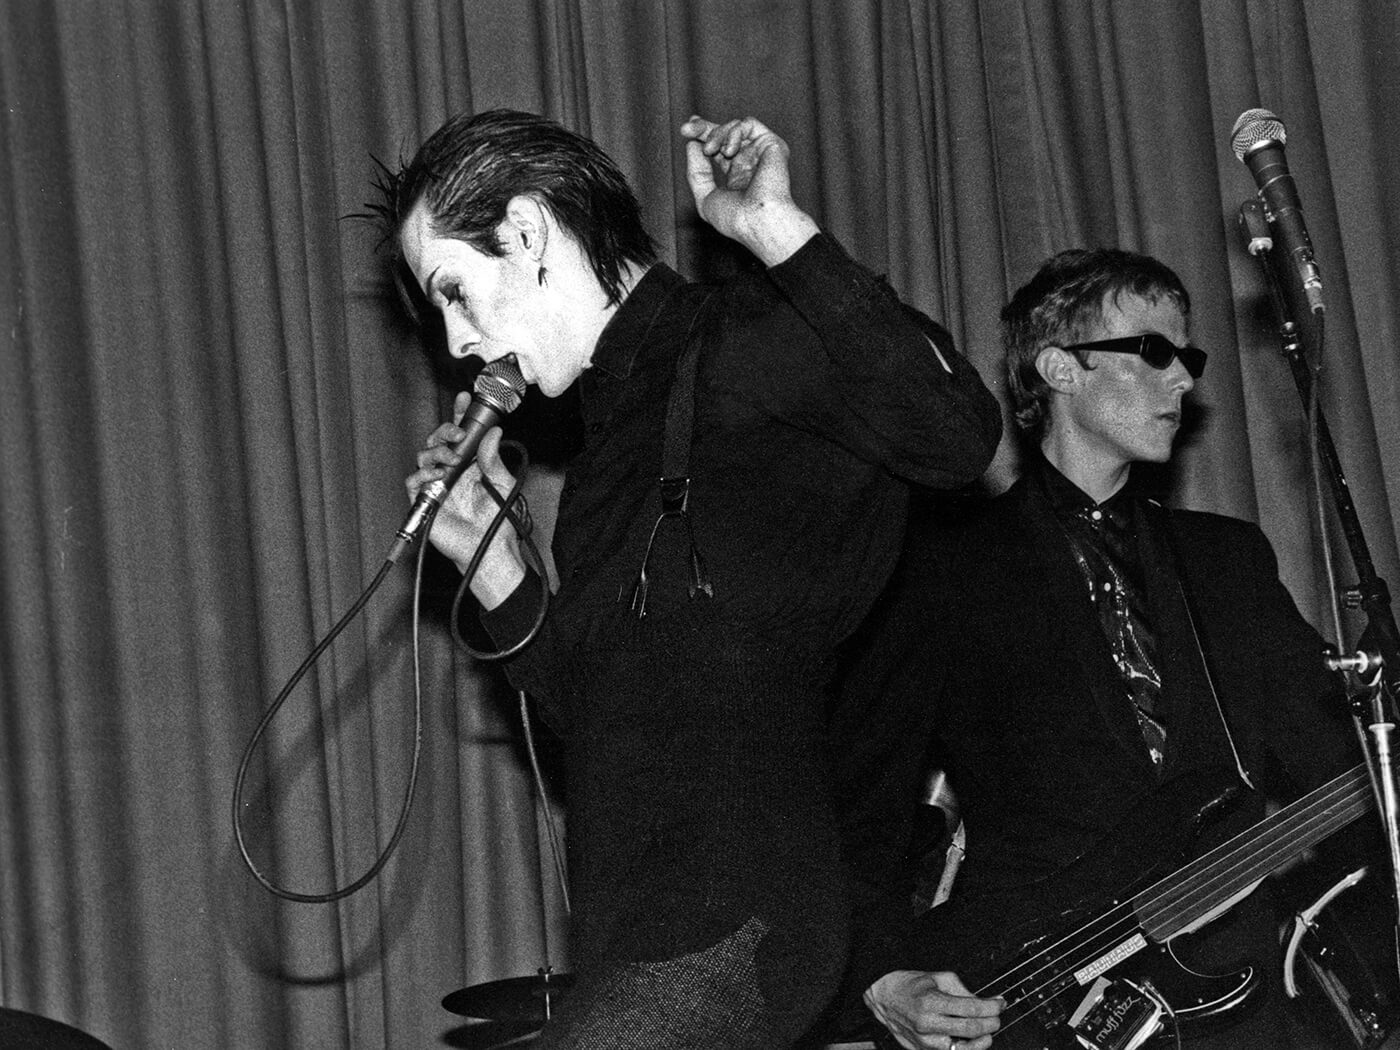 """Bauhaus on 'Bela Lugosi's Dead': """"It was the 'Stairway To Heaven' of the 1980s"""""""